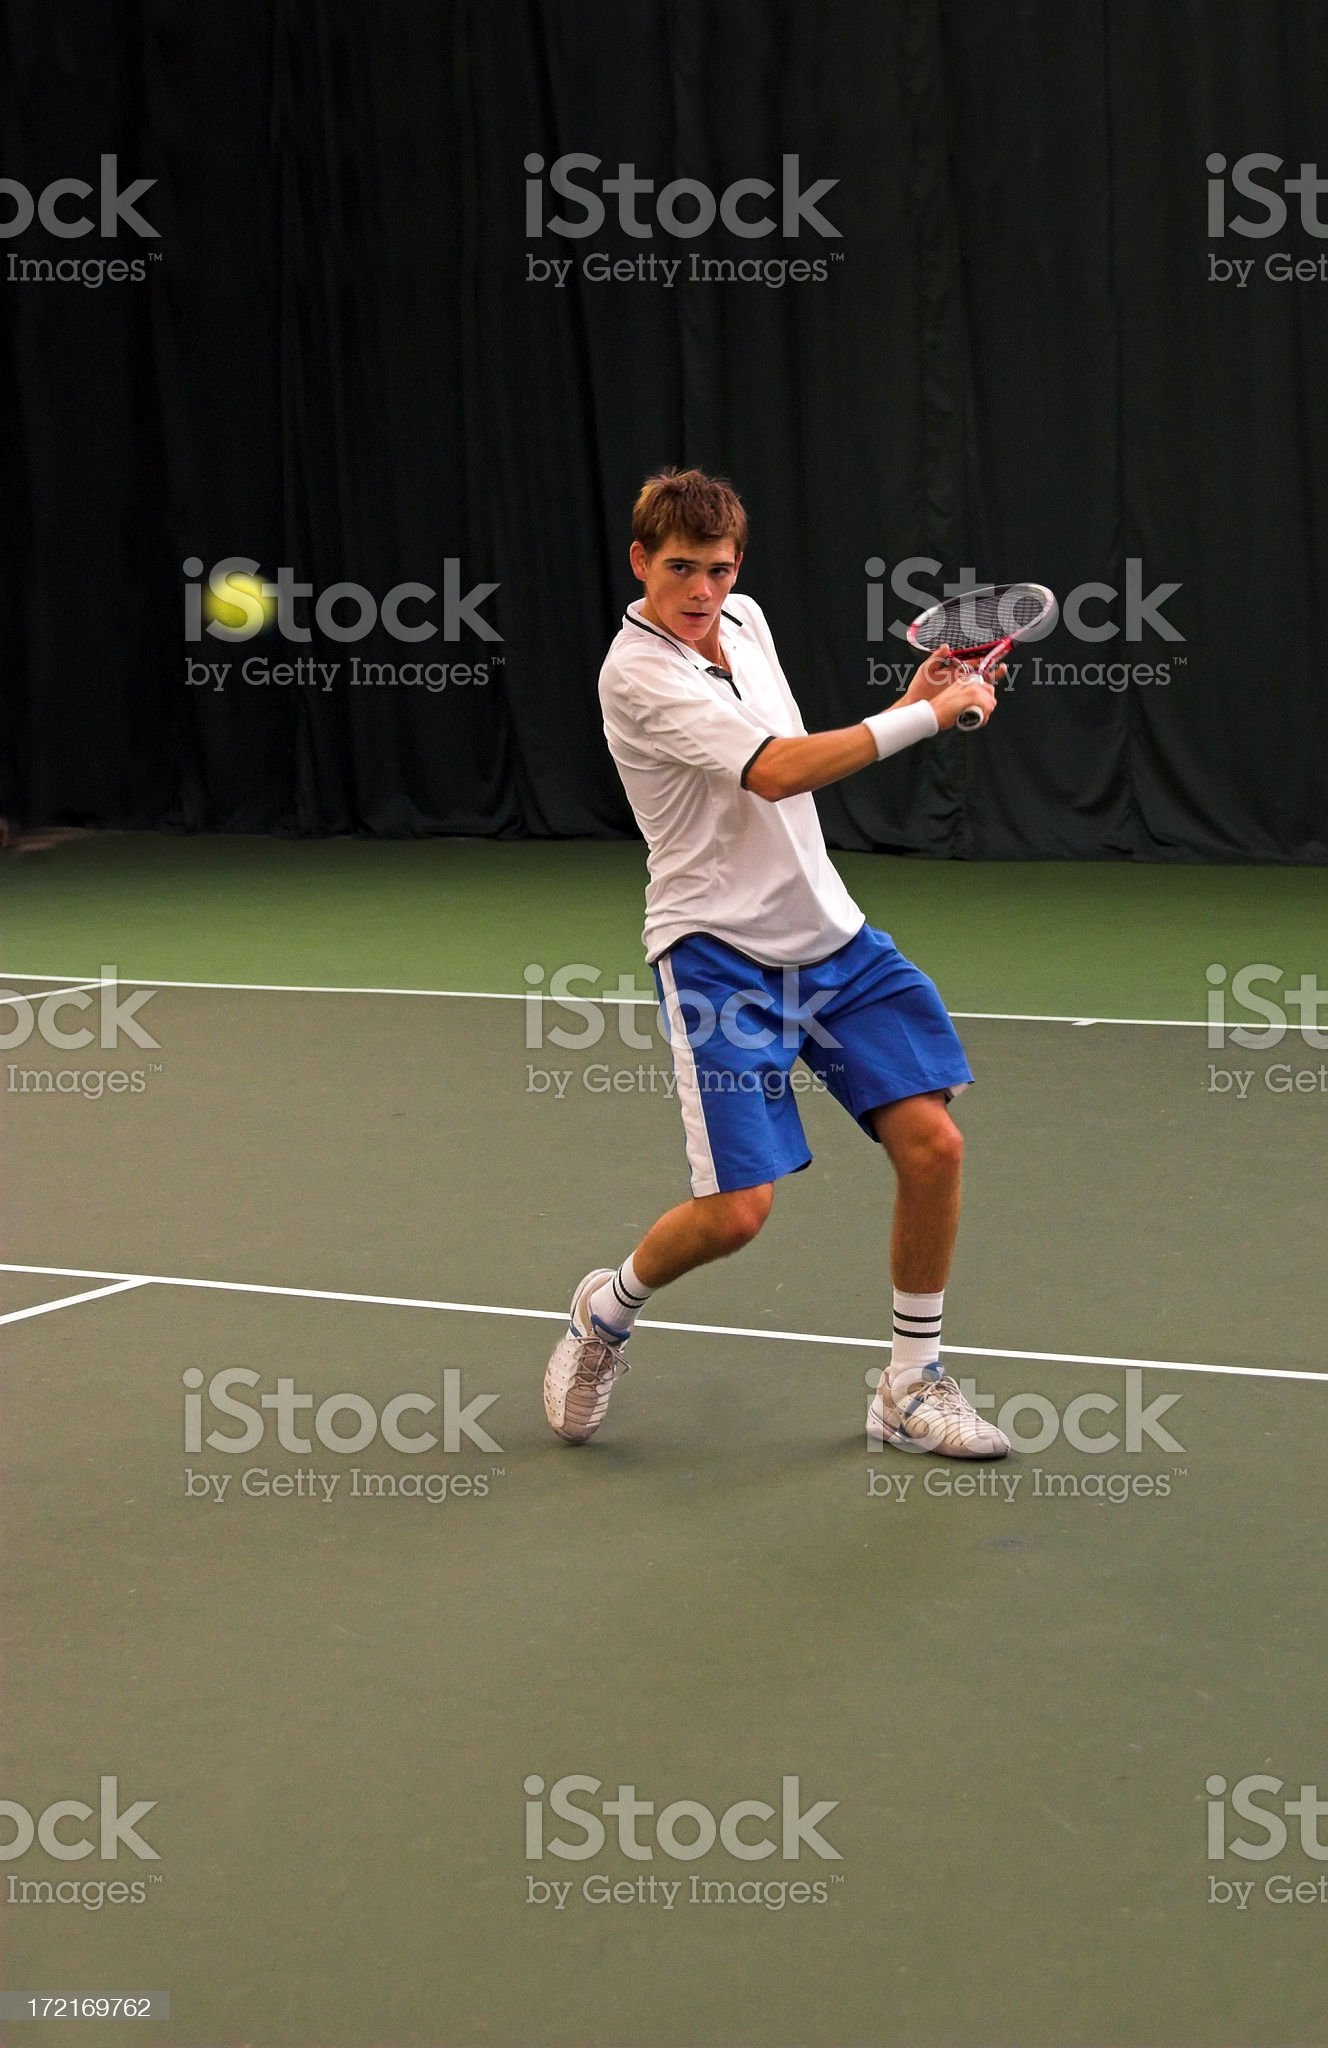 Indoors tennis match royalty-free stock photo